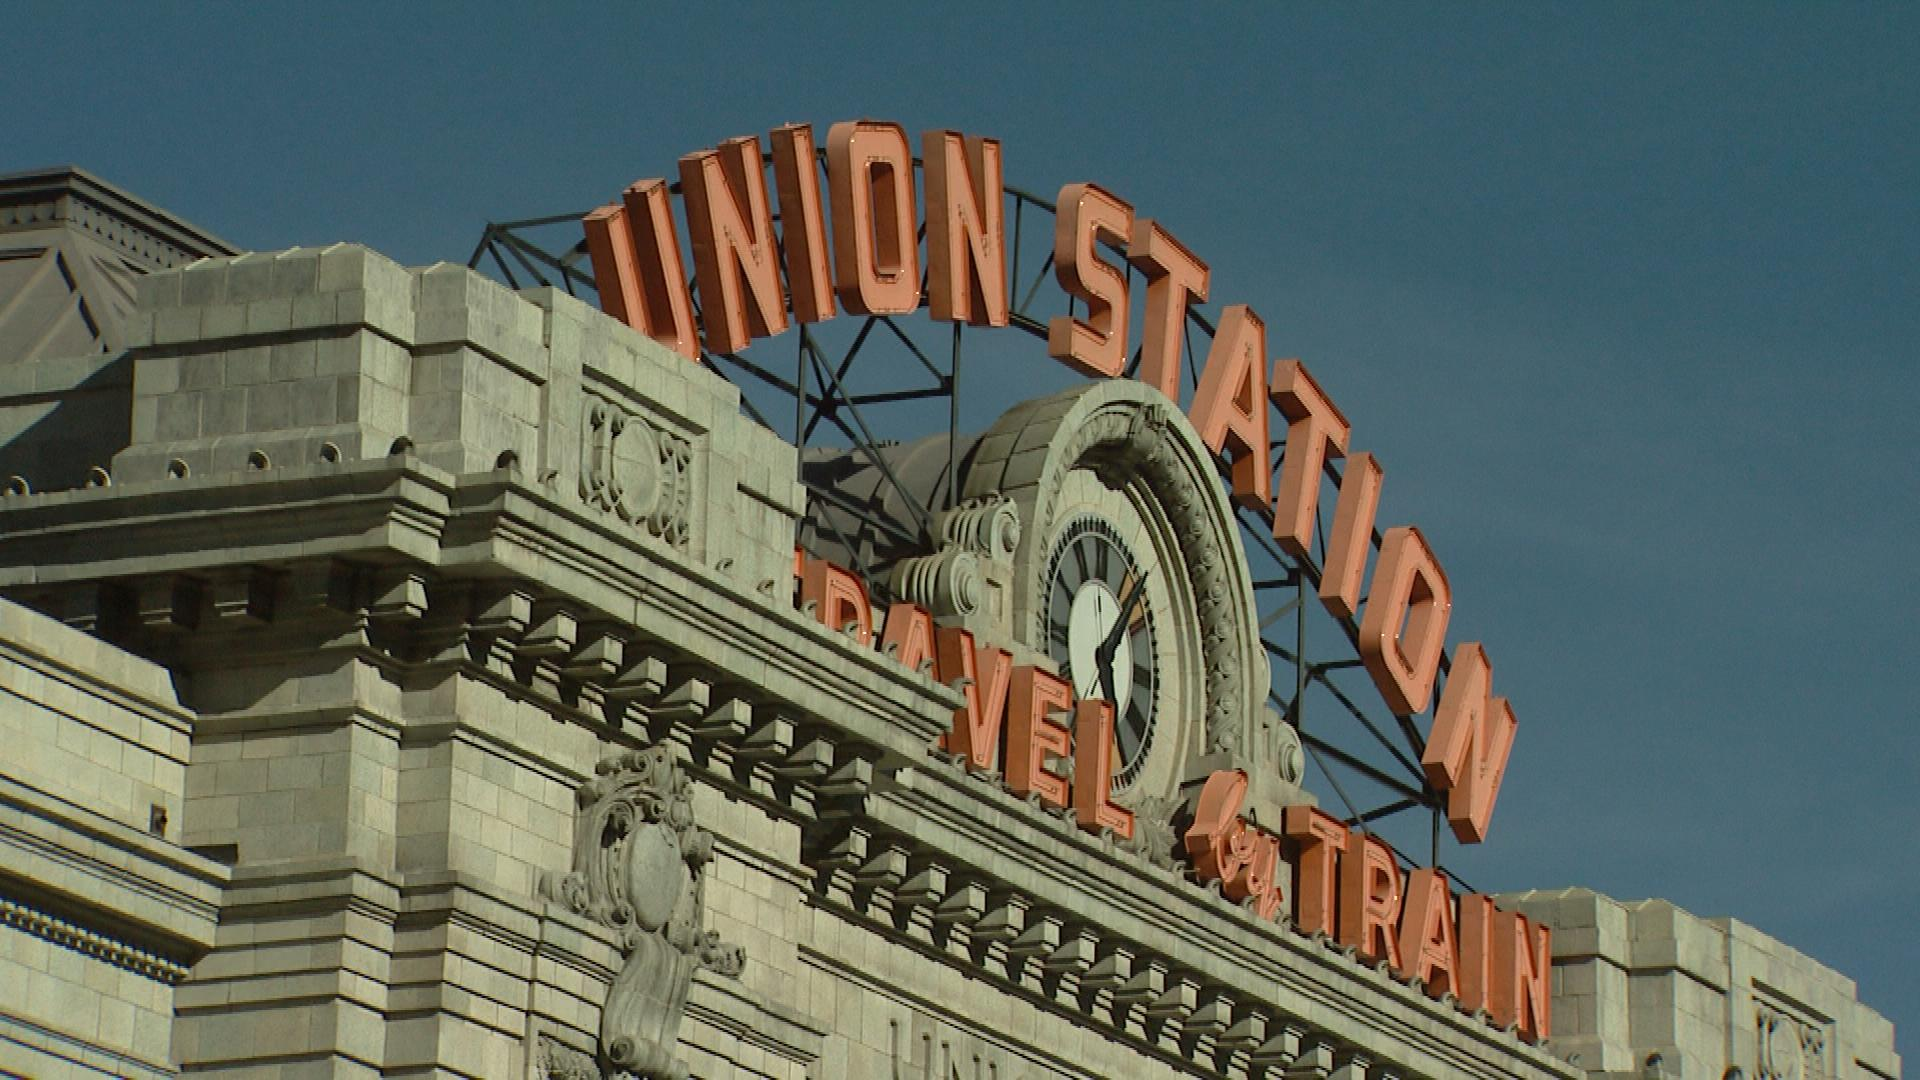 Union Station (credit: CBS)